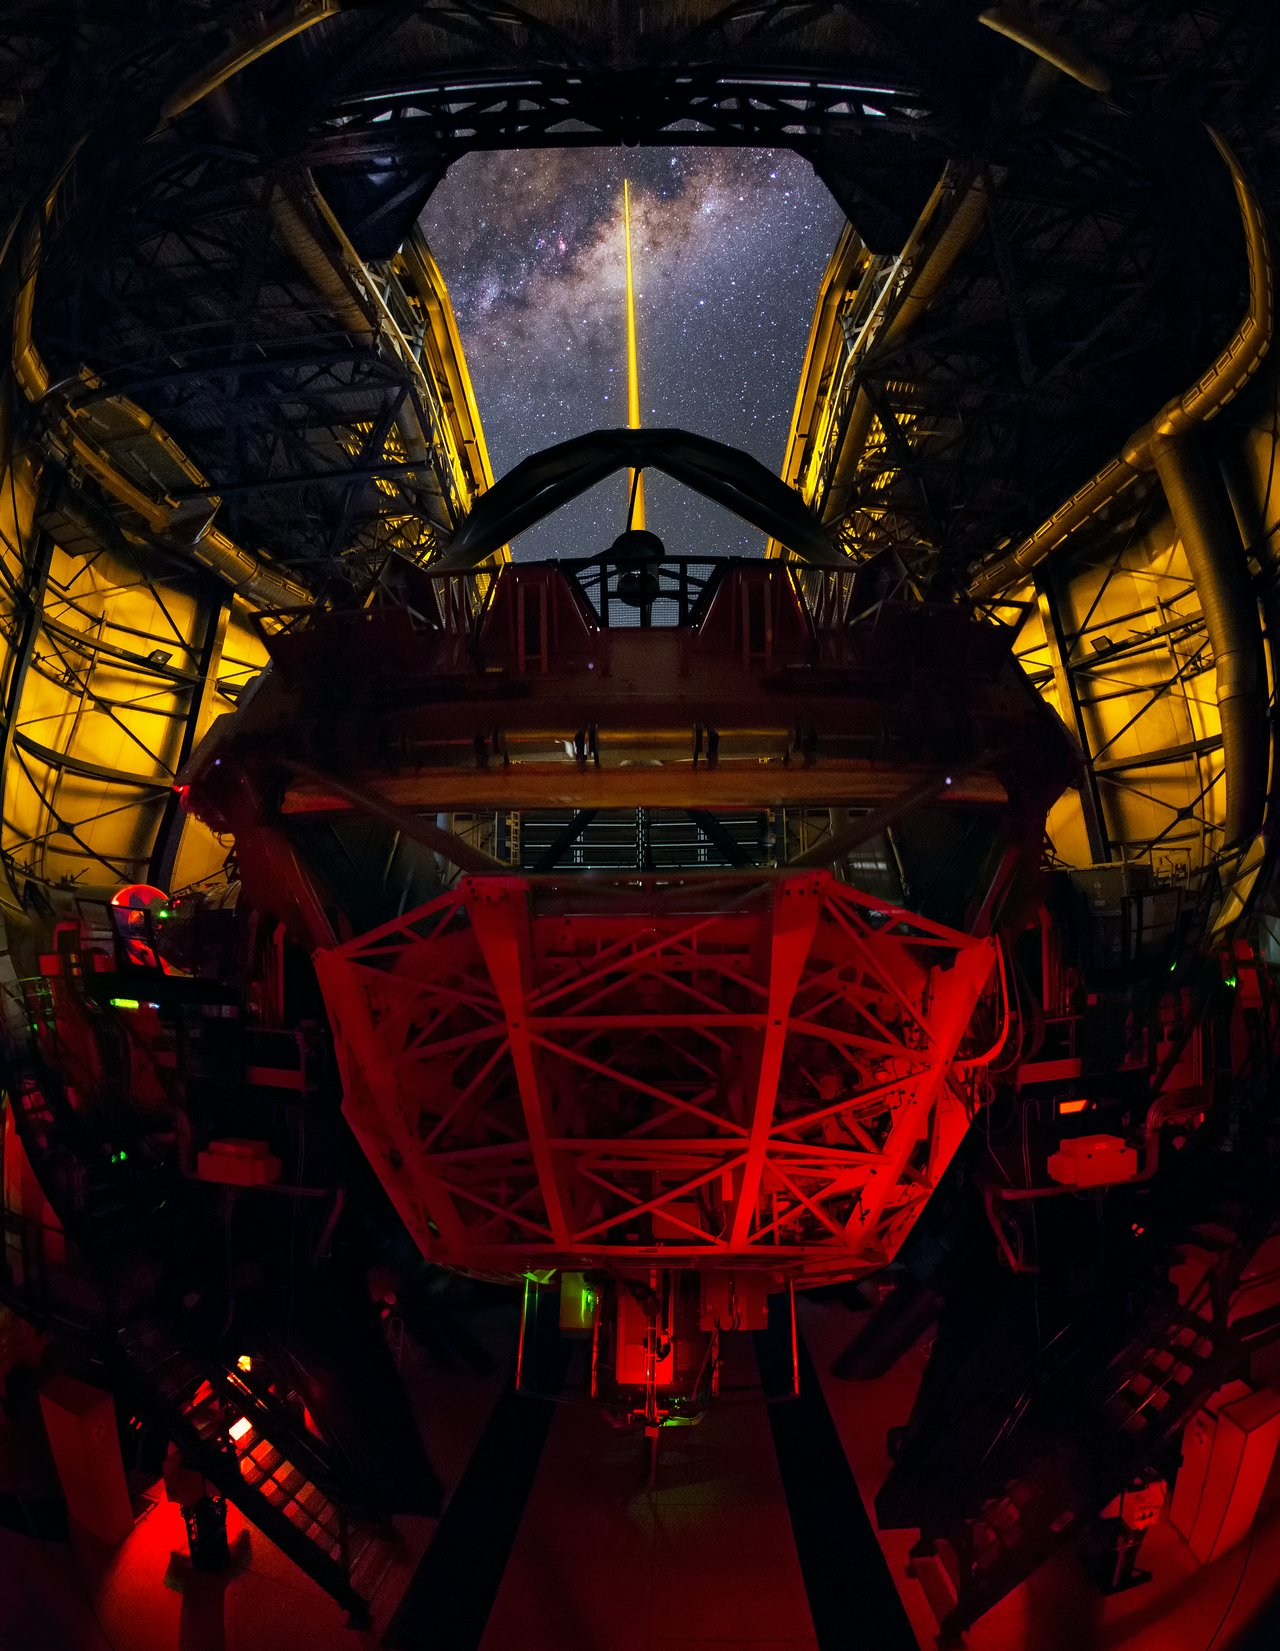 Taken from inside the dome of the fourth Unit Telescope of ESO's Very Large Telescope (VLT), this spectacular shot from ESO Photo Ambassador Yuri Beletsky captures the VLT's Laser Guide Star (LGS) in action. The LGS, located on top of the 1.2-metre secondary mirror of Unit Telescope 4, is part of the VLT's adaptive optics system. By creating a glowing spot — an artificial star — in the Earth's atmosphere at an altitude of 90 kilometres, the light coming back from the laser can be used as a reference to remove the effects of atmospheric distortion. This allows the telescope to produce astronomical images almost as sharp as if the telescope were in space. The plane of the Milky Way, seemingly pierced by the laser as it soars above the open dome of the telescope, is rippled with dark clouds of interstellar dust that block visible light. However, thanks to the telescope's infrared instruments and the adaptive optics system, astronomers can study and image our galaxy's complex and turbulent core in unprecedented detail.